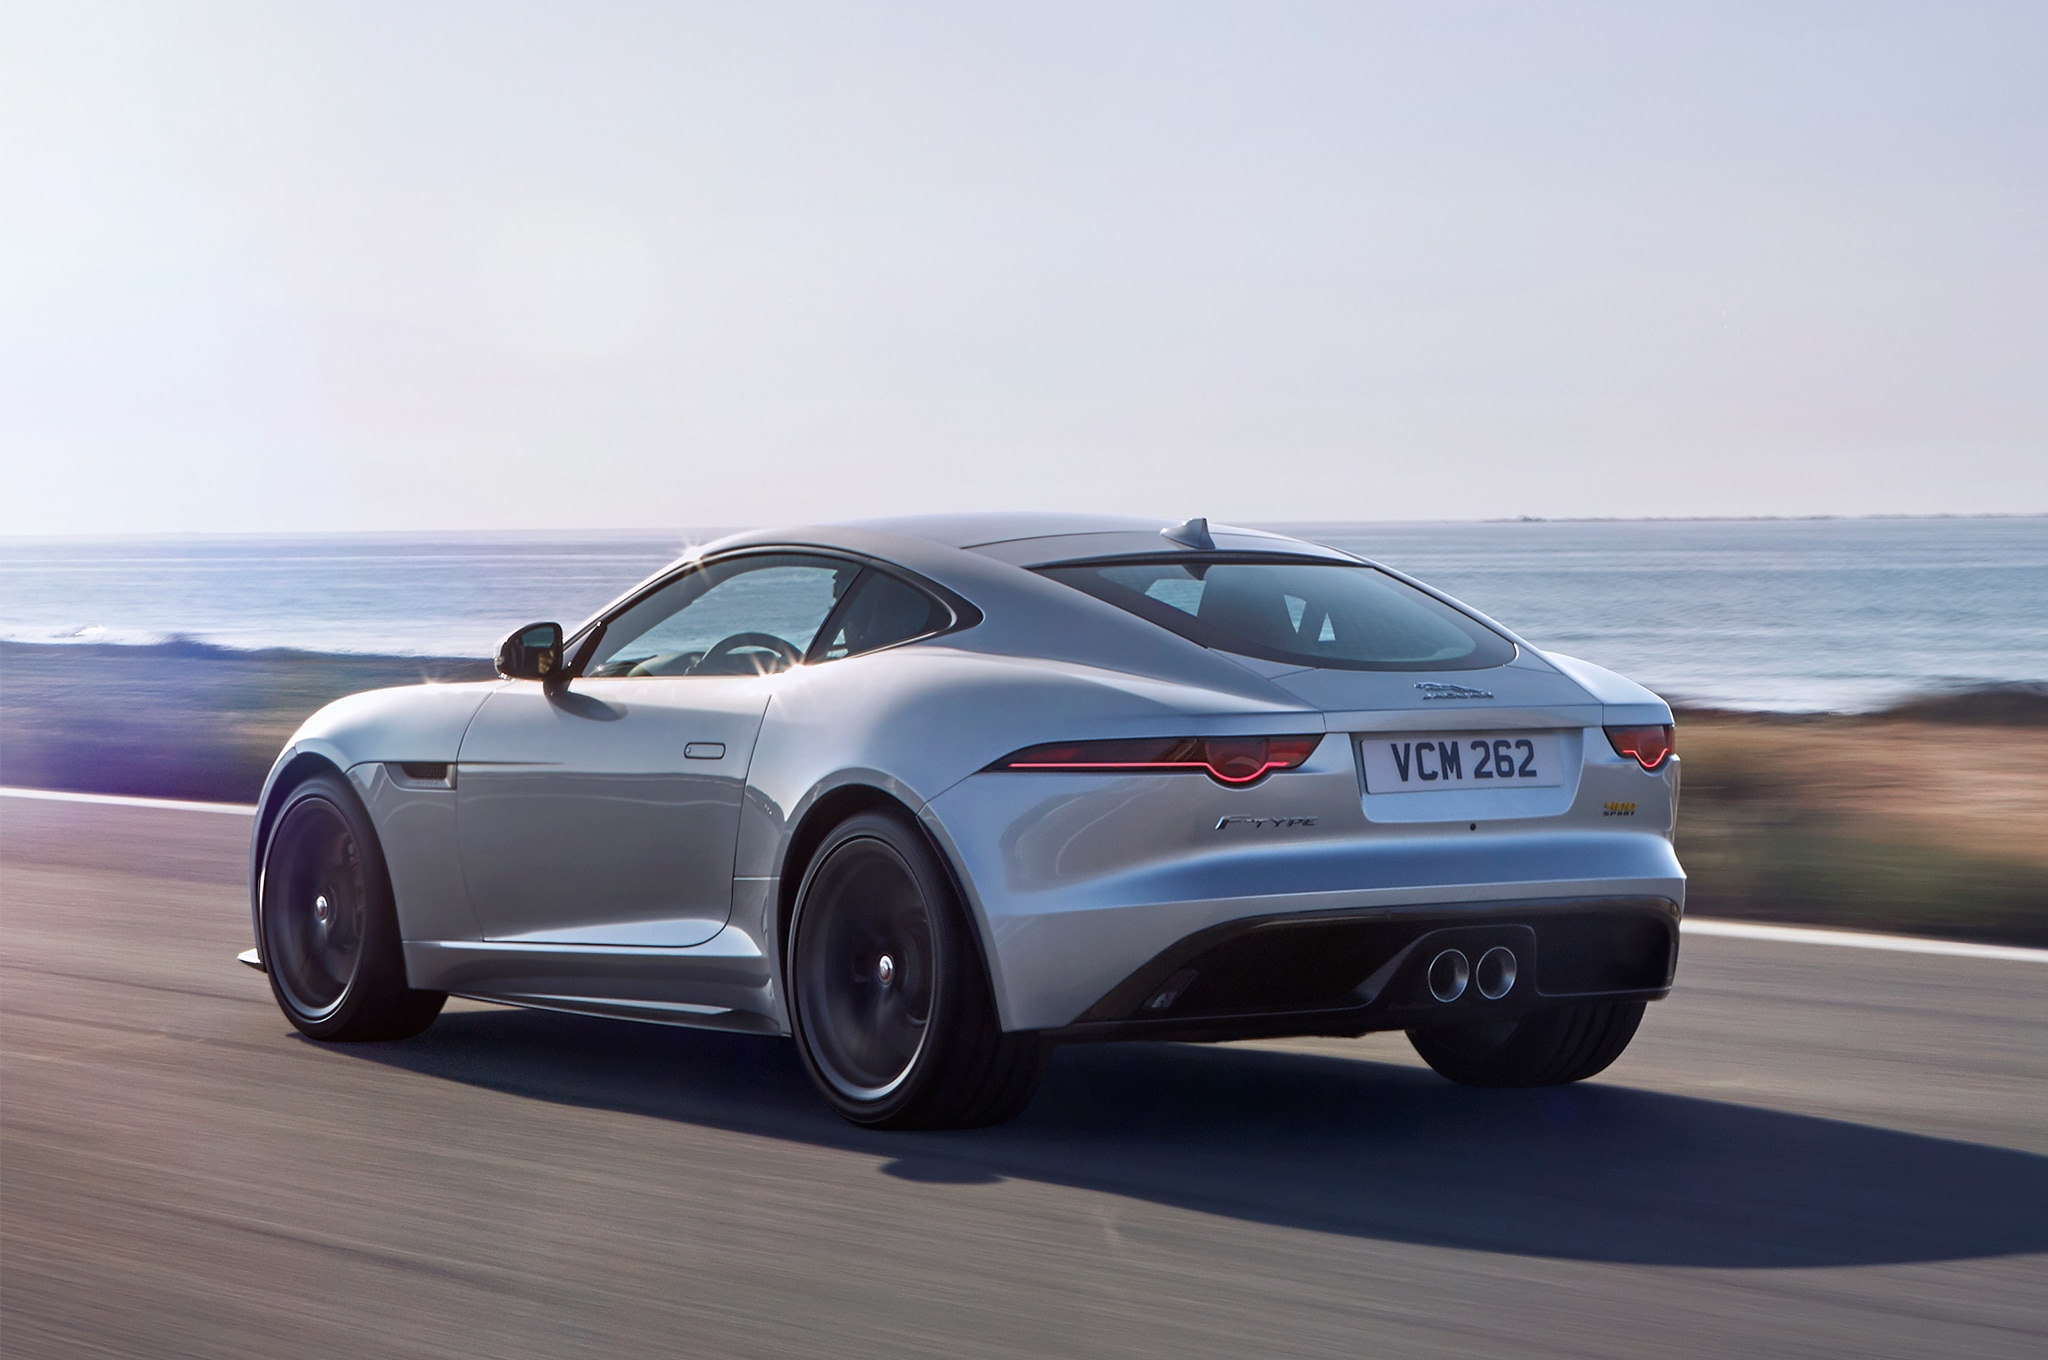 2018 Jaguar F Type 400 Sport Rear Three Quarter In Motion 02 1